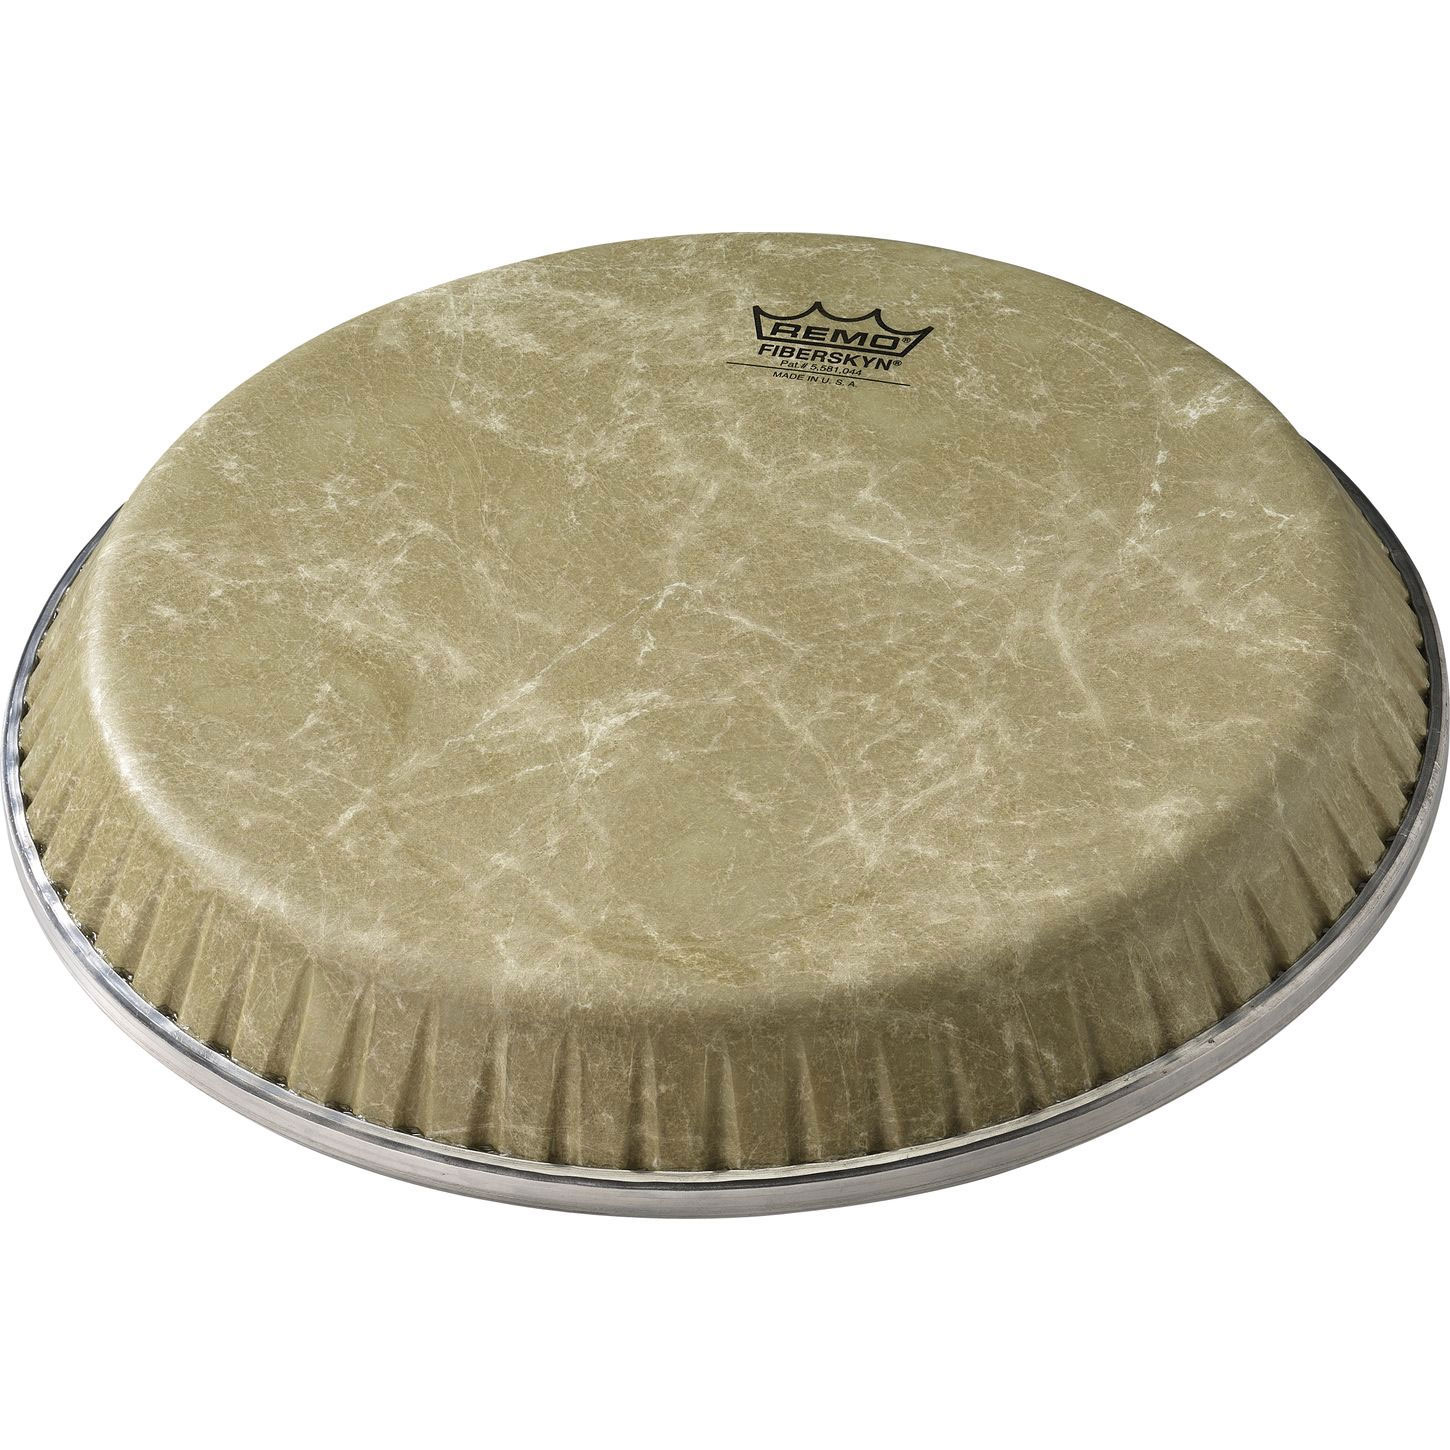 "Remo 12.5"" Symmetry Fiberskyn Conga Drum Head (D2 Collar)"